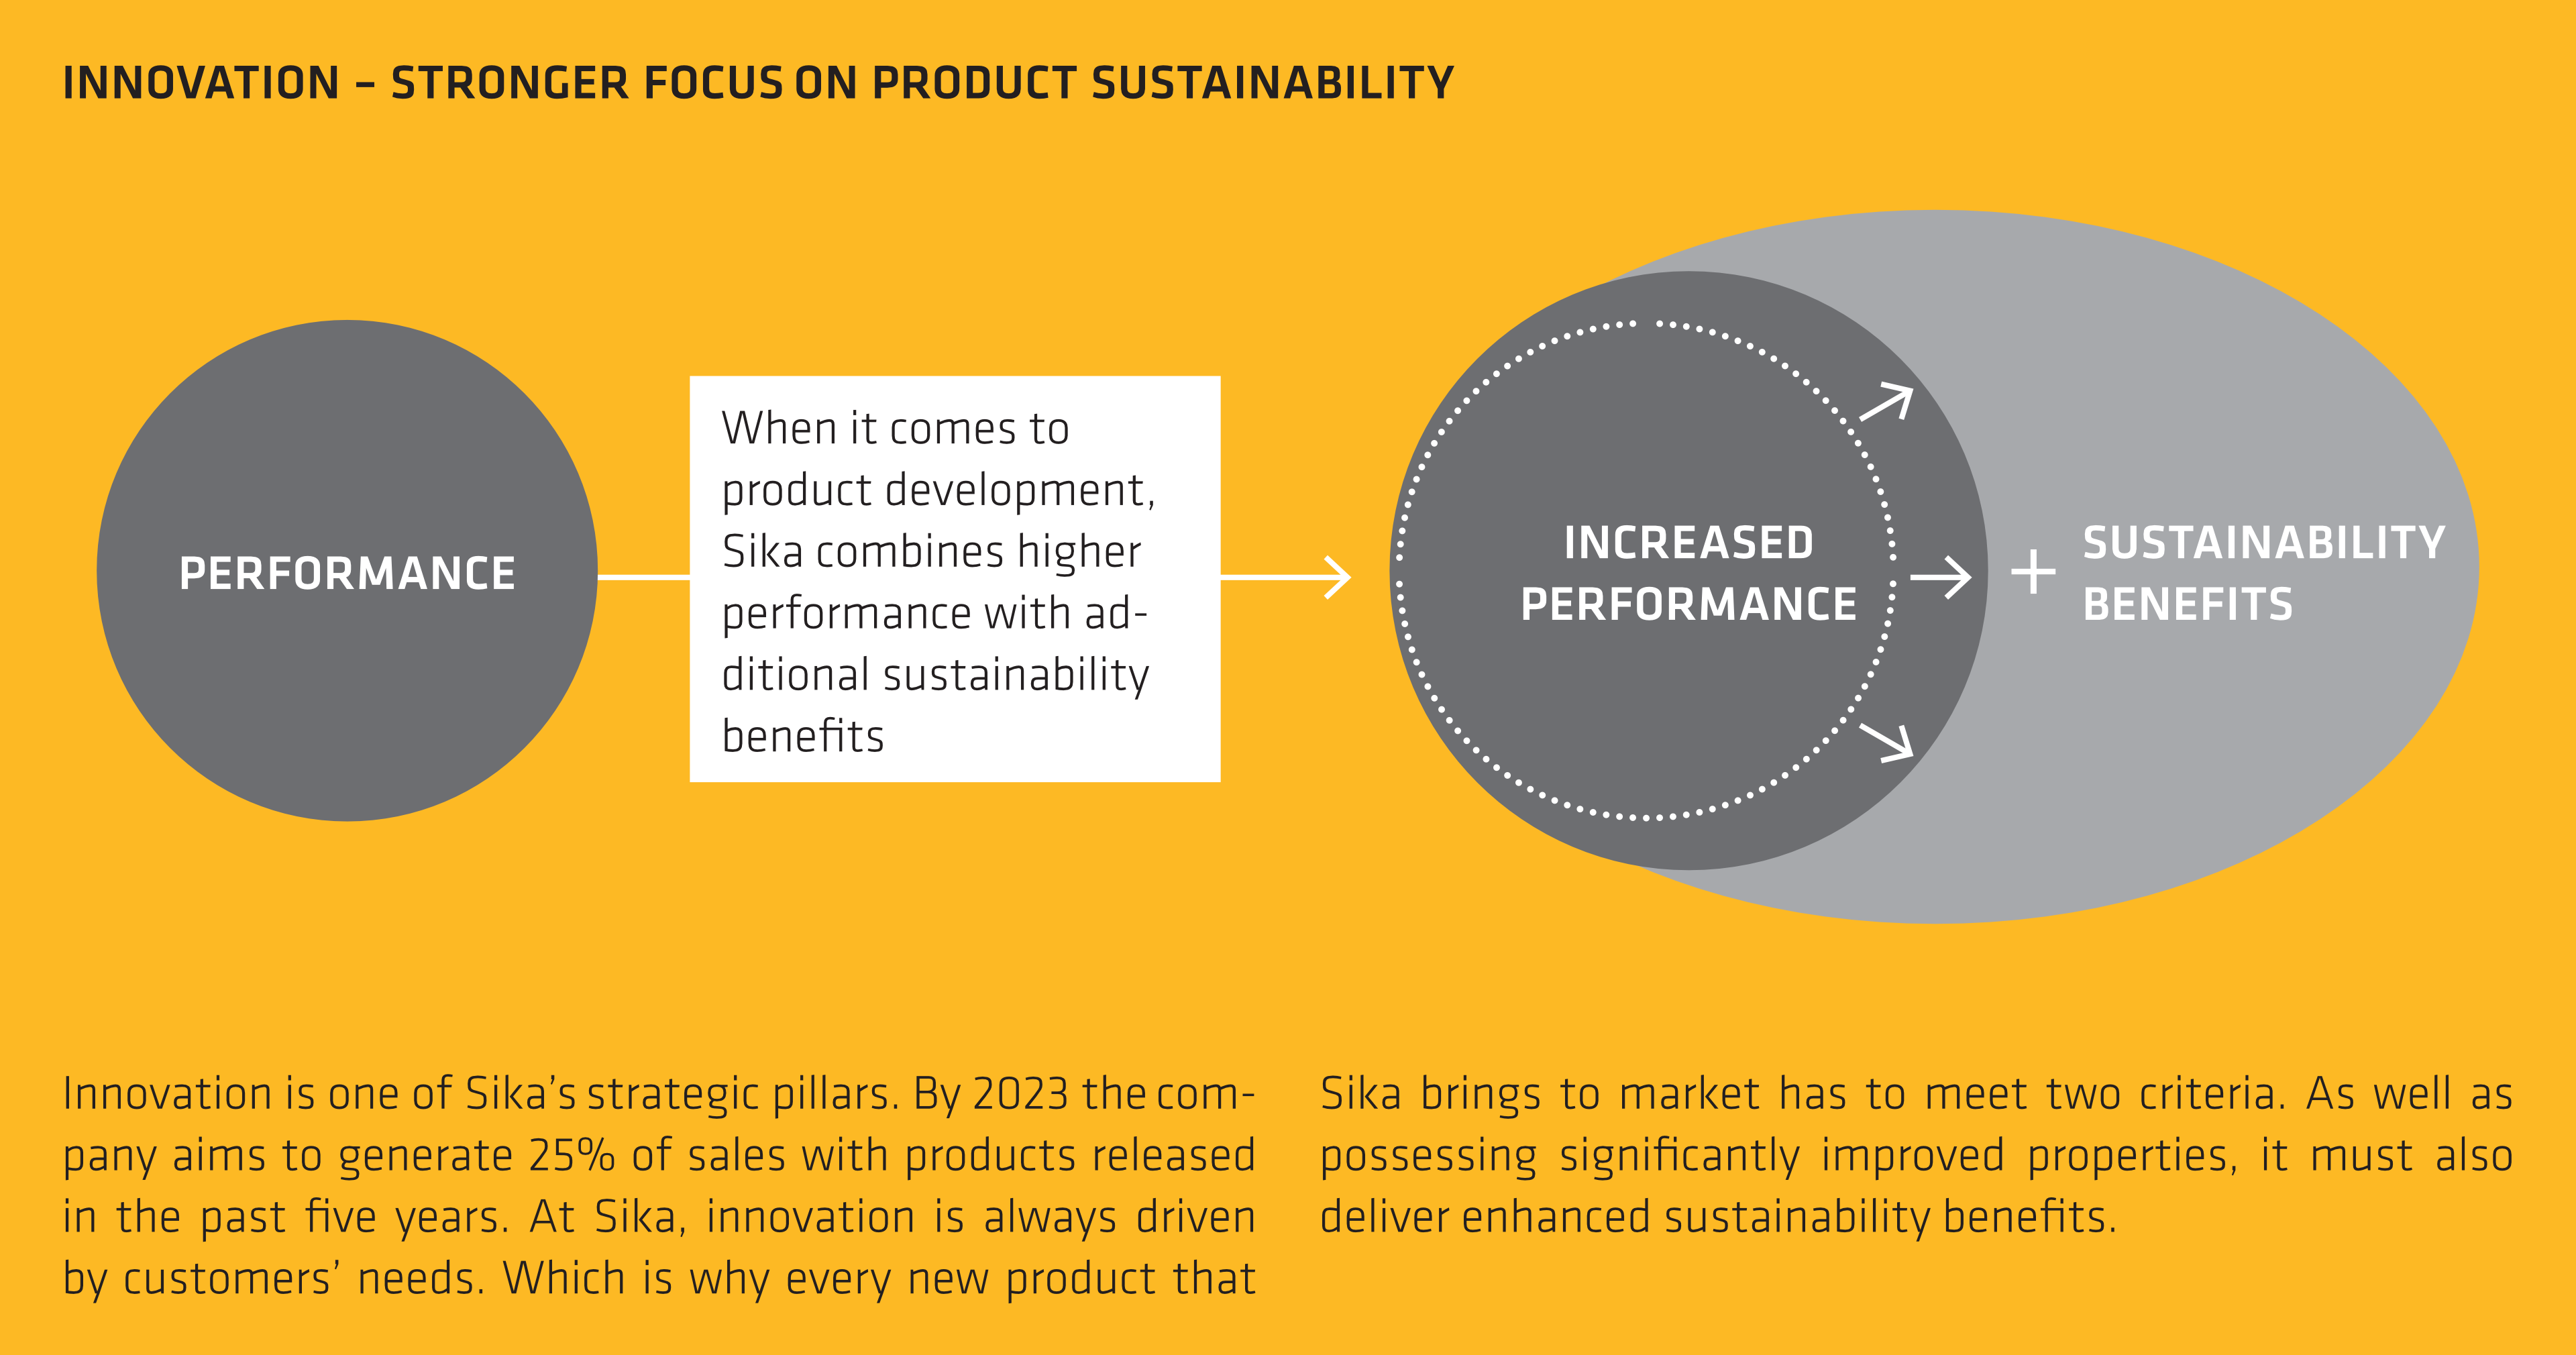 Innovation - stronger focus on product sustainability